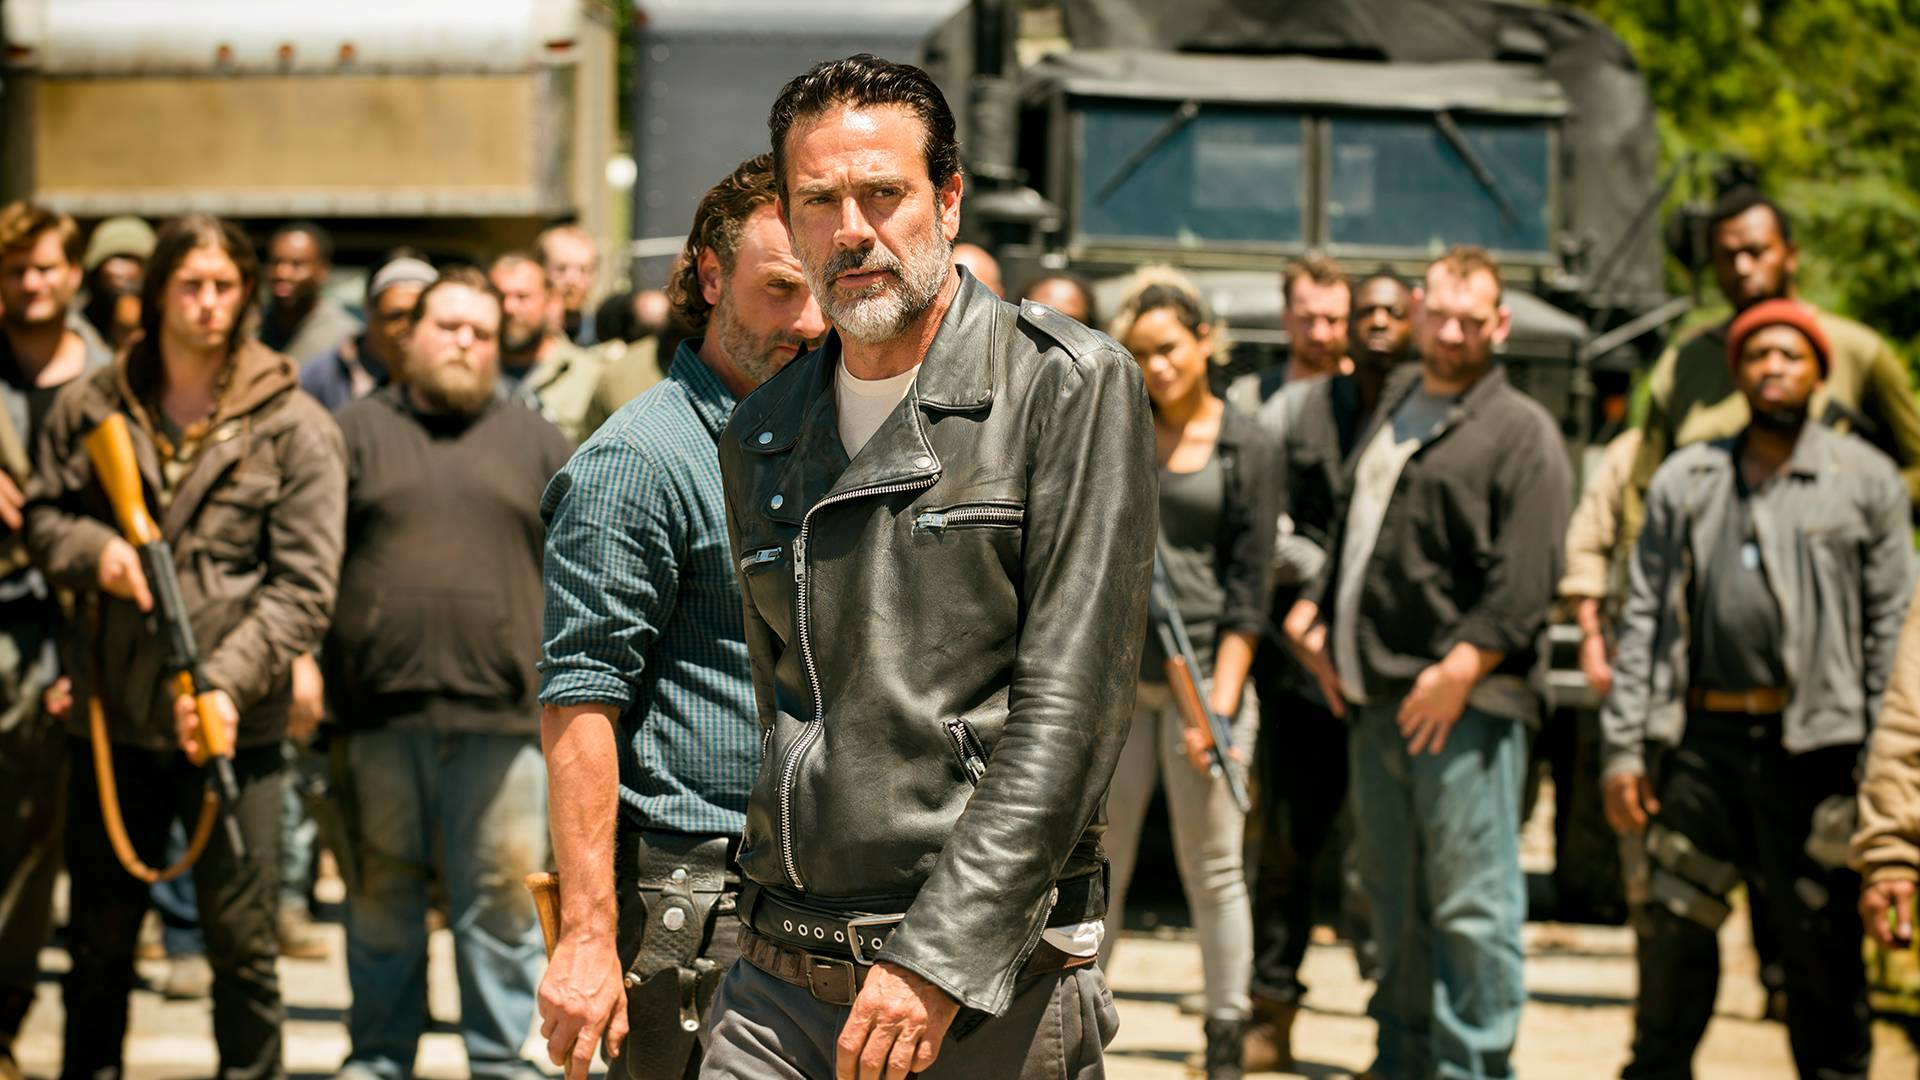 The walking dead how many seasons 92